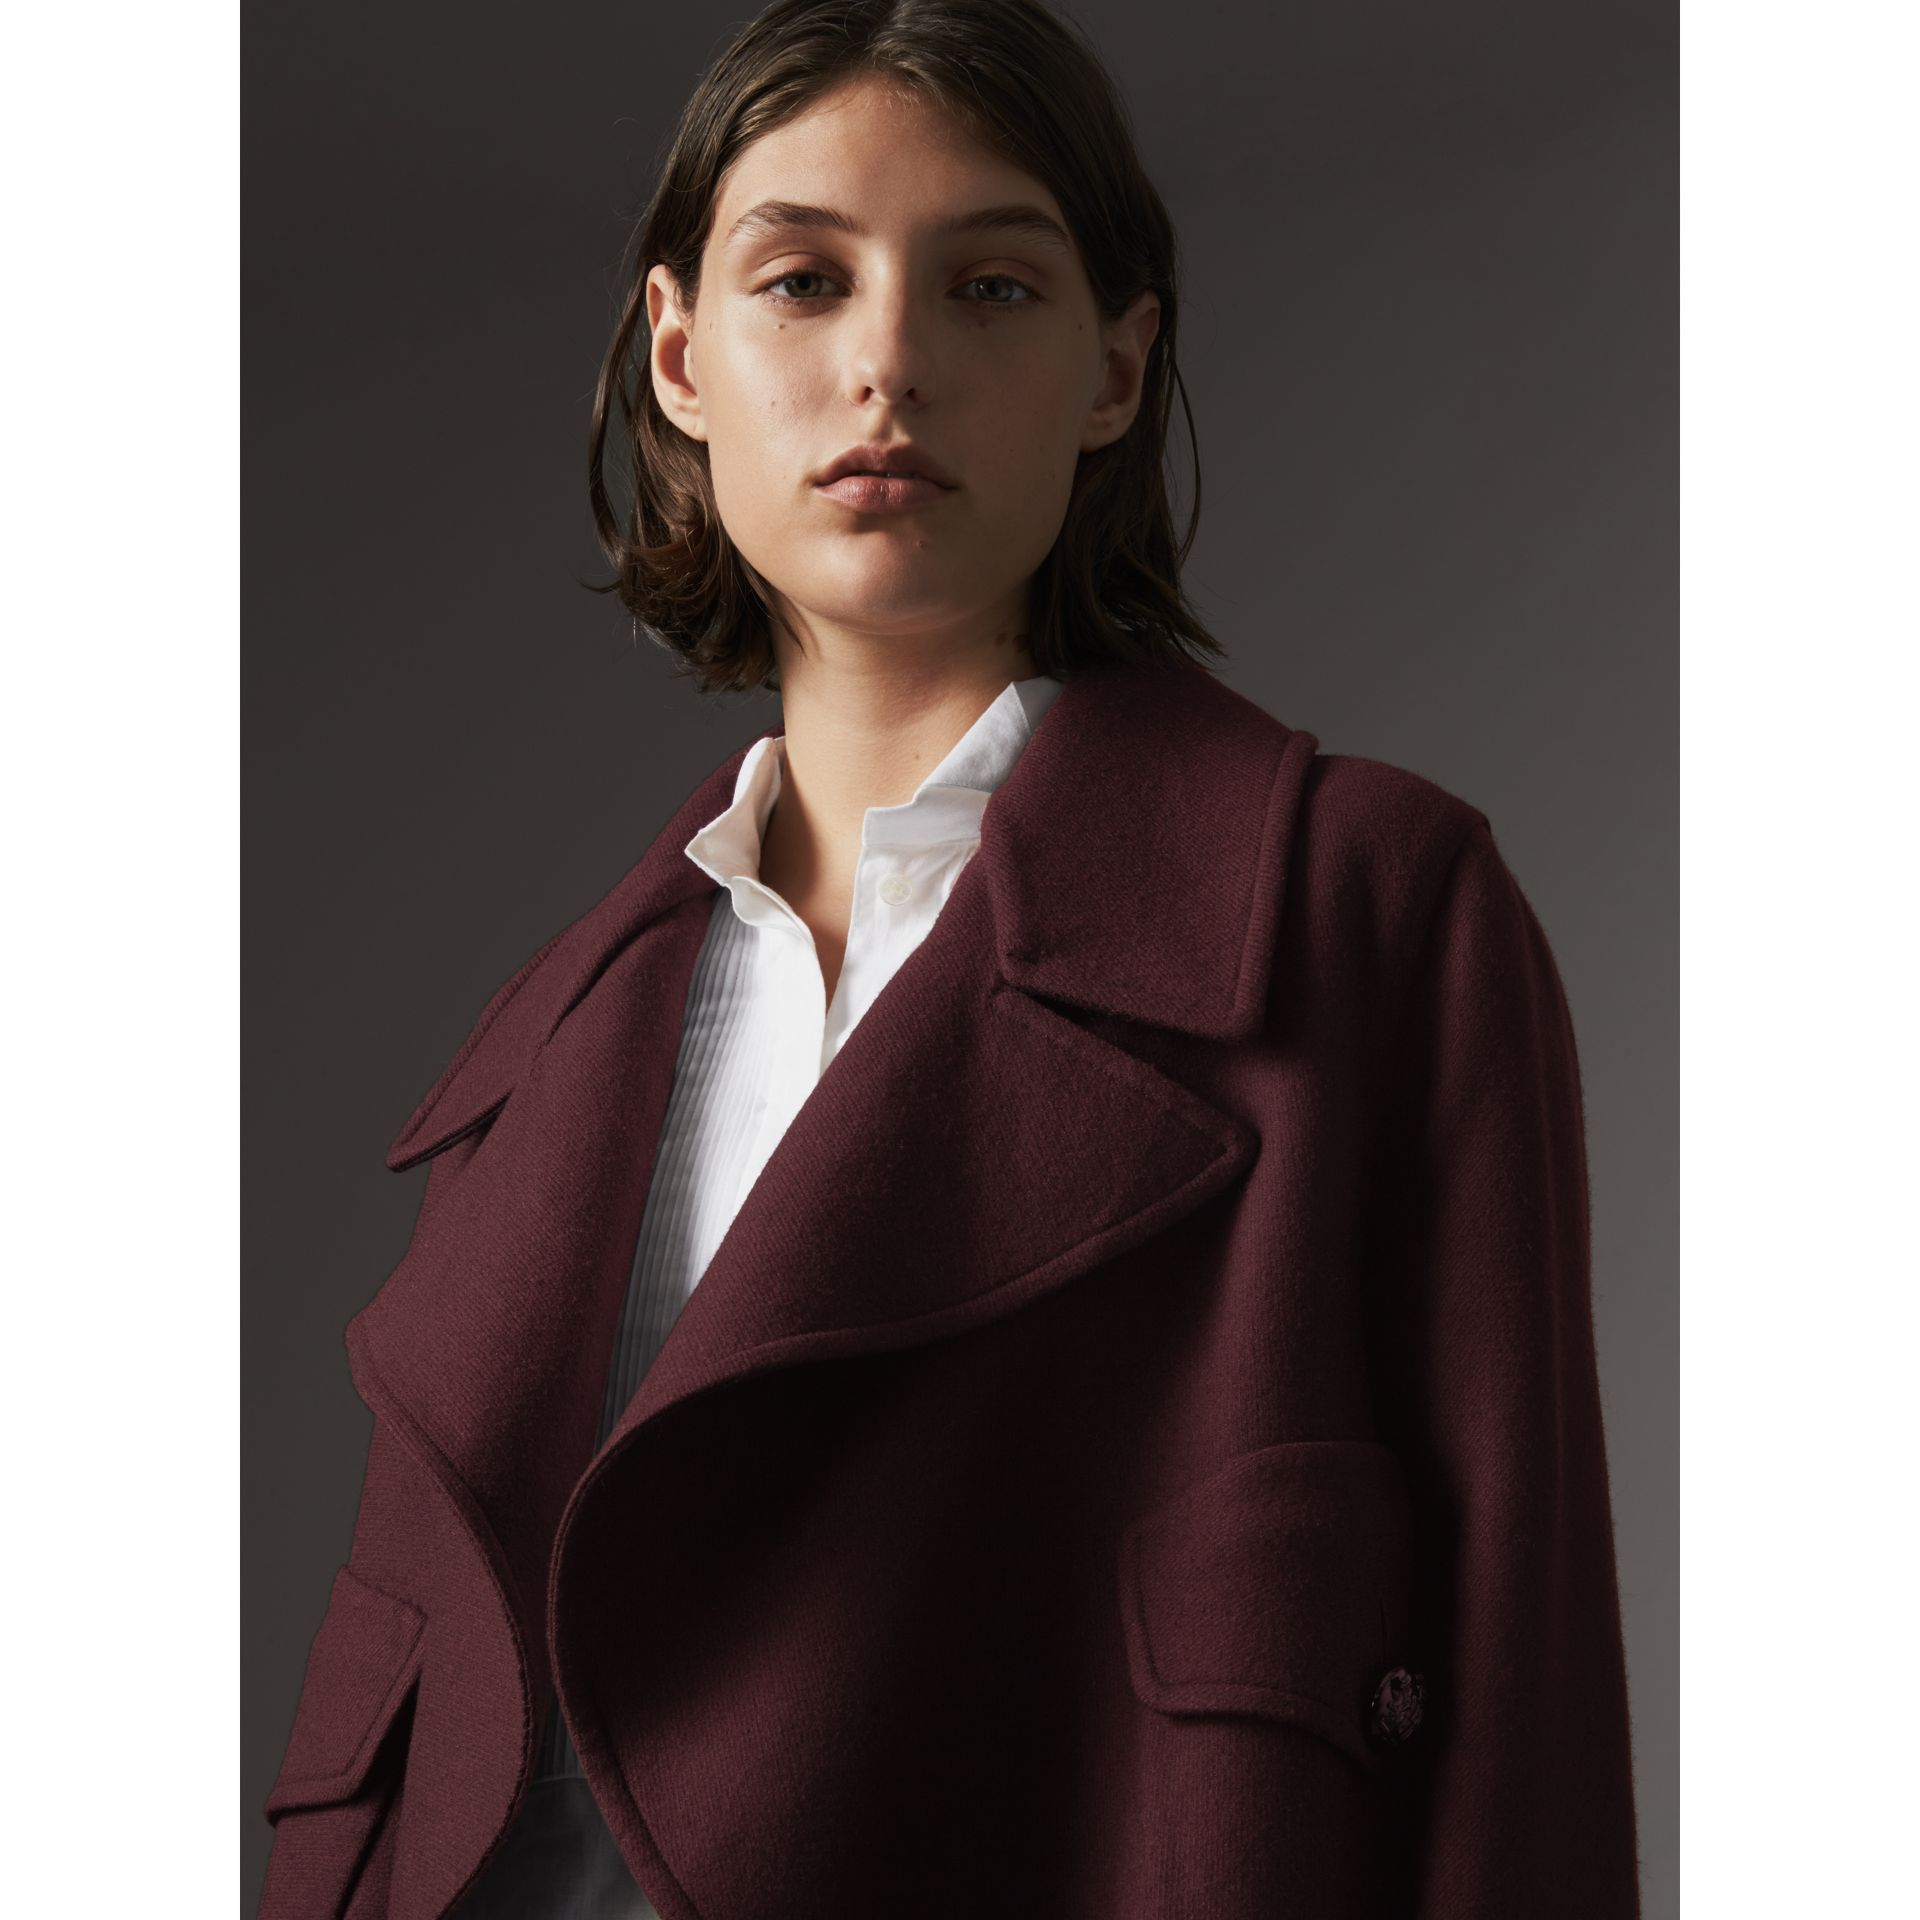 Manteau portefeuille en laine et cachemire double face (Bordeaux Intense) - Femme | Burberry - photo de la galerie 5